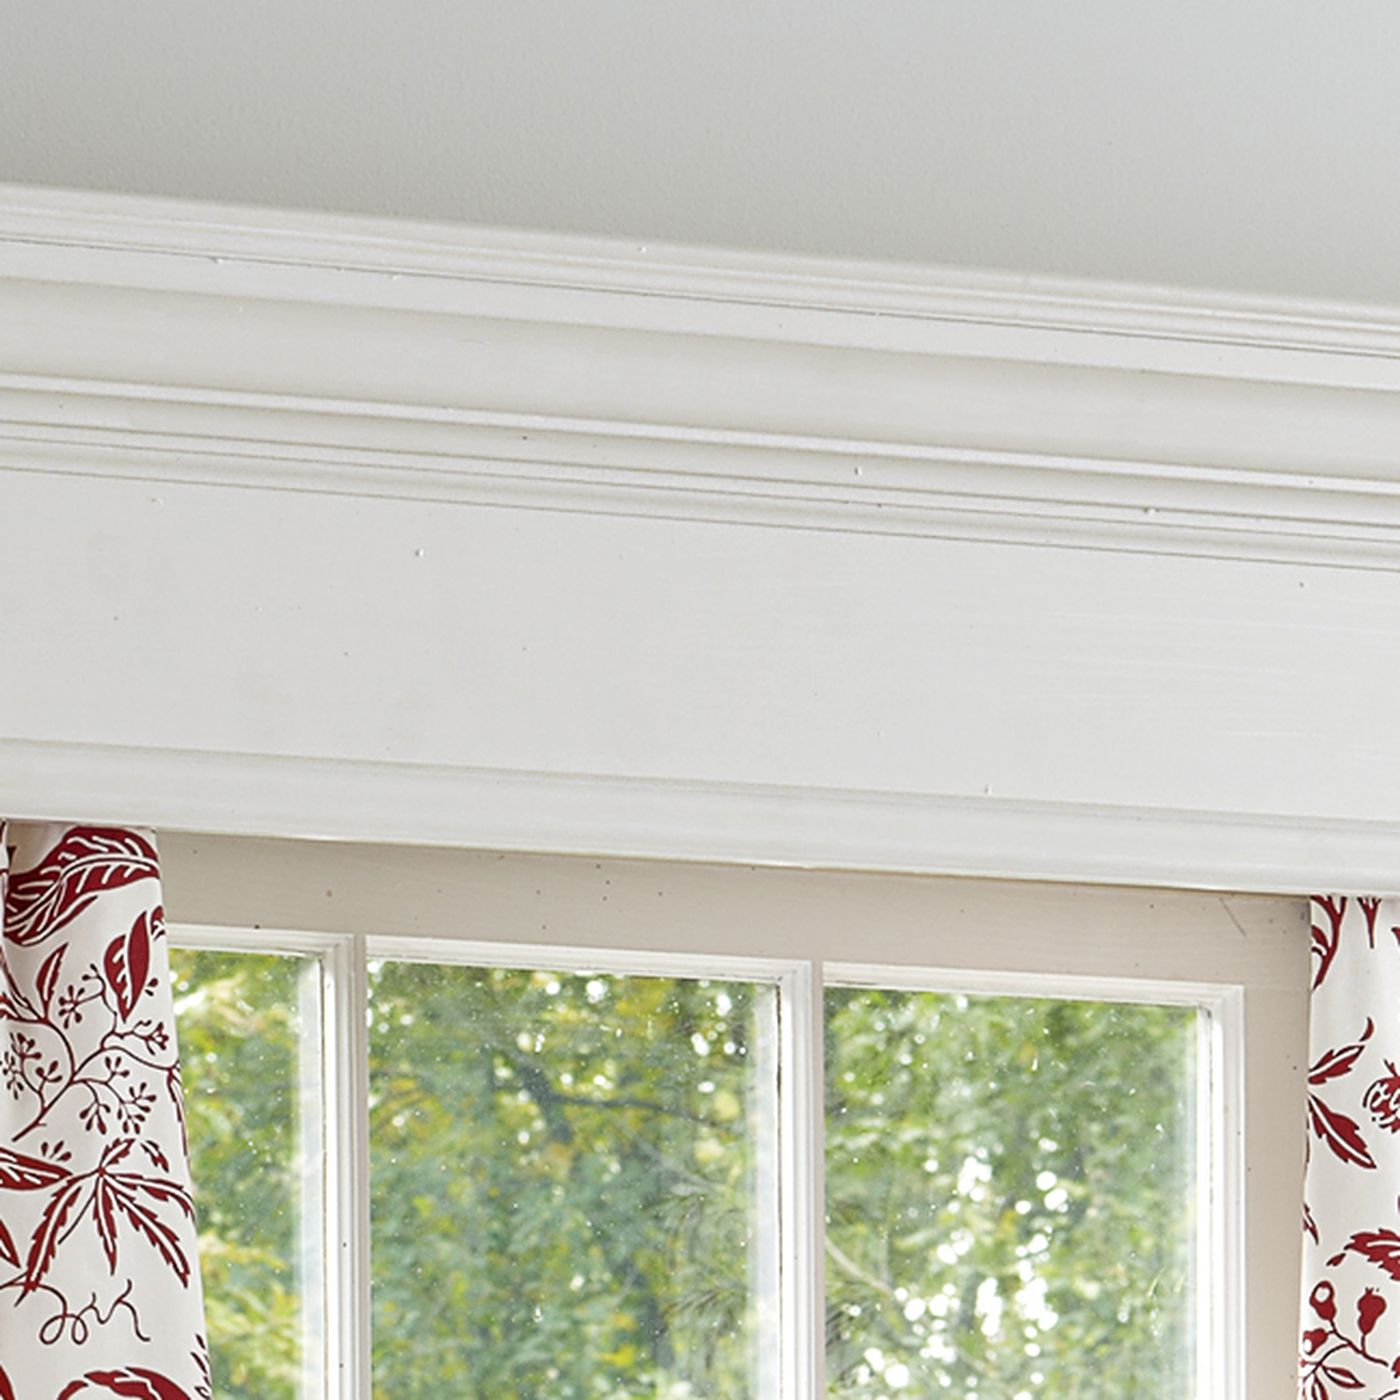 How To Build A Window Cornice This Old House